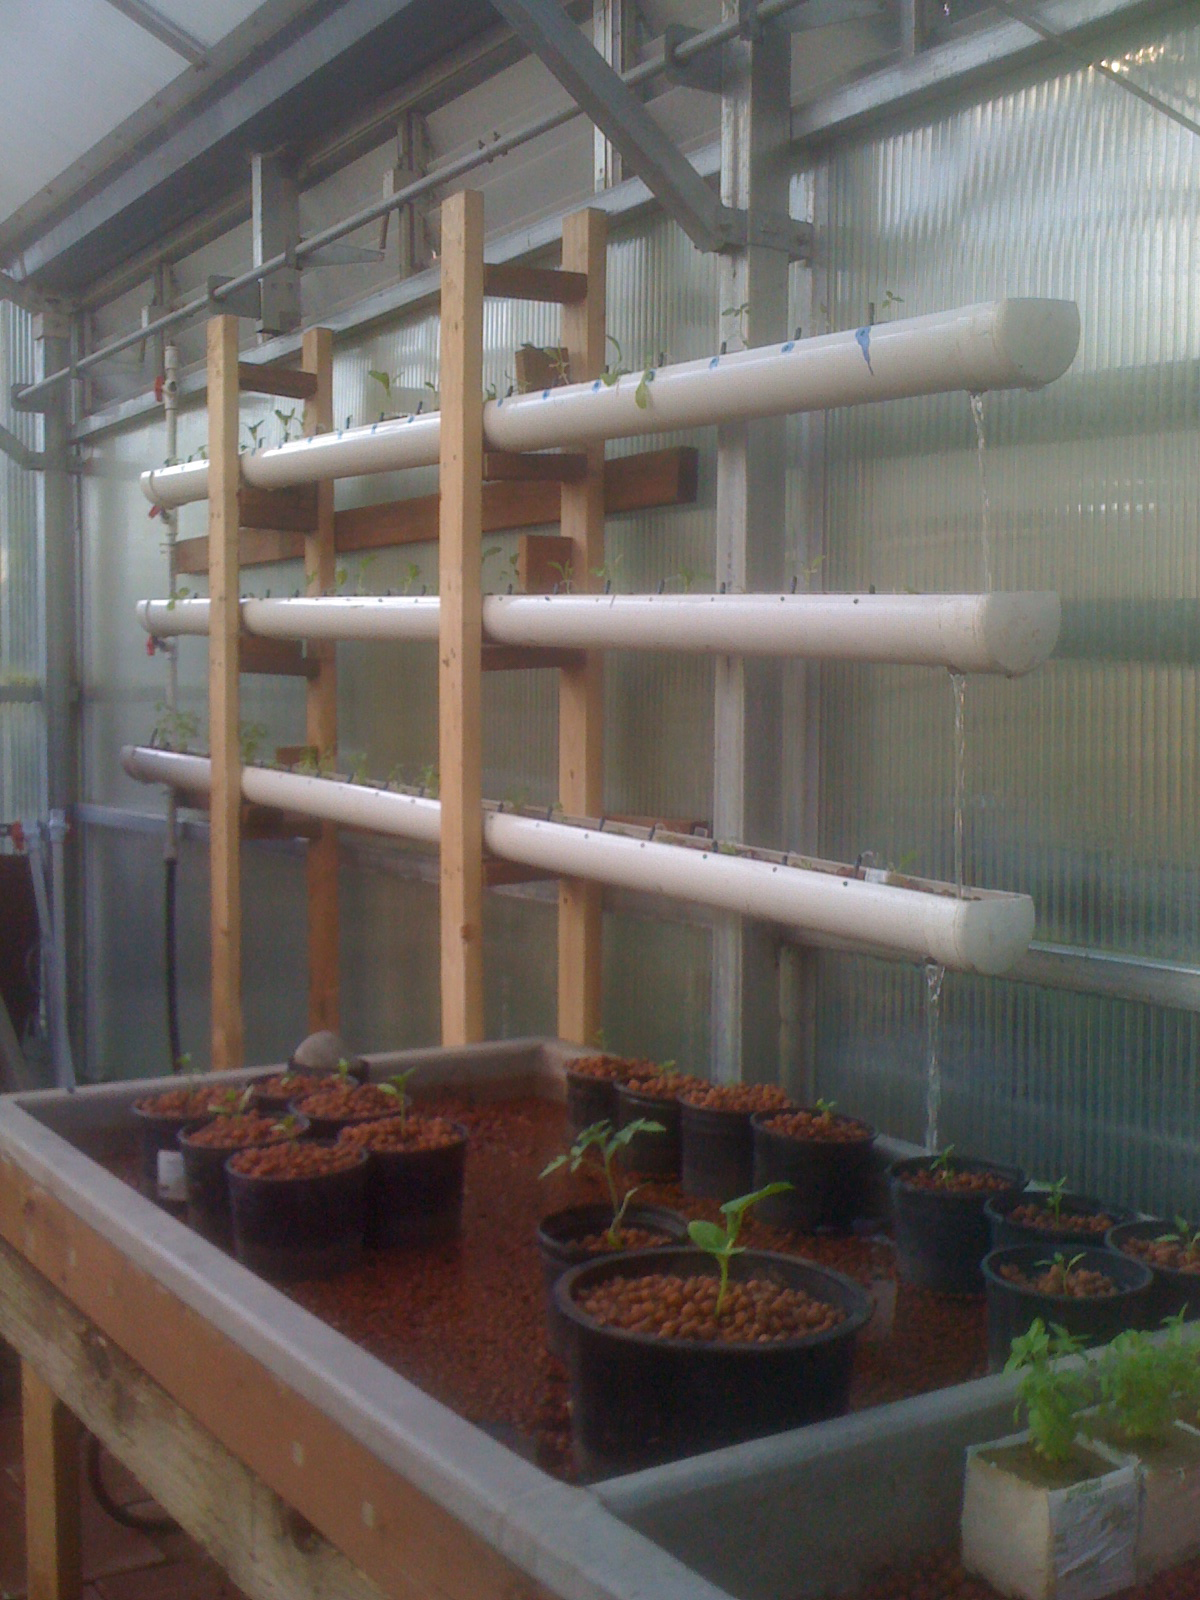 Hydroponics blog healthier food converting the for Hydroponic grow bed